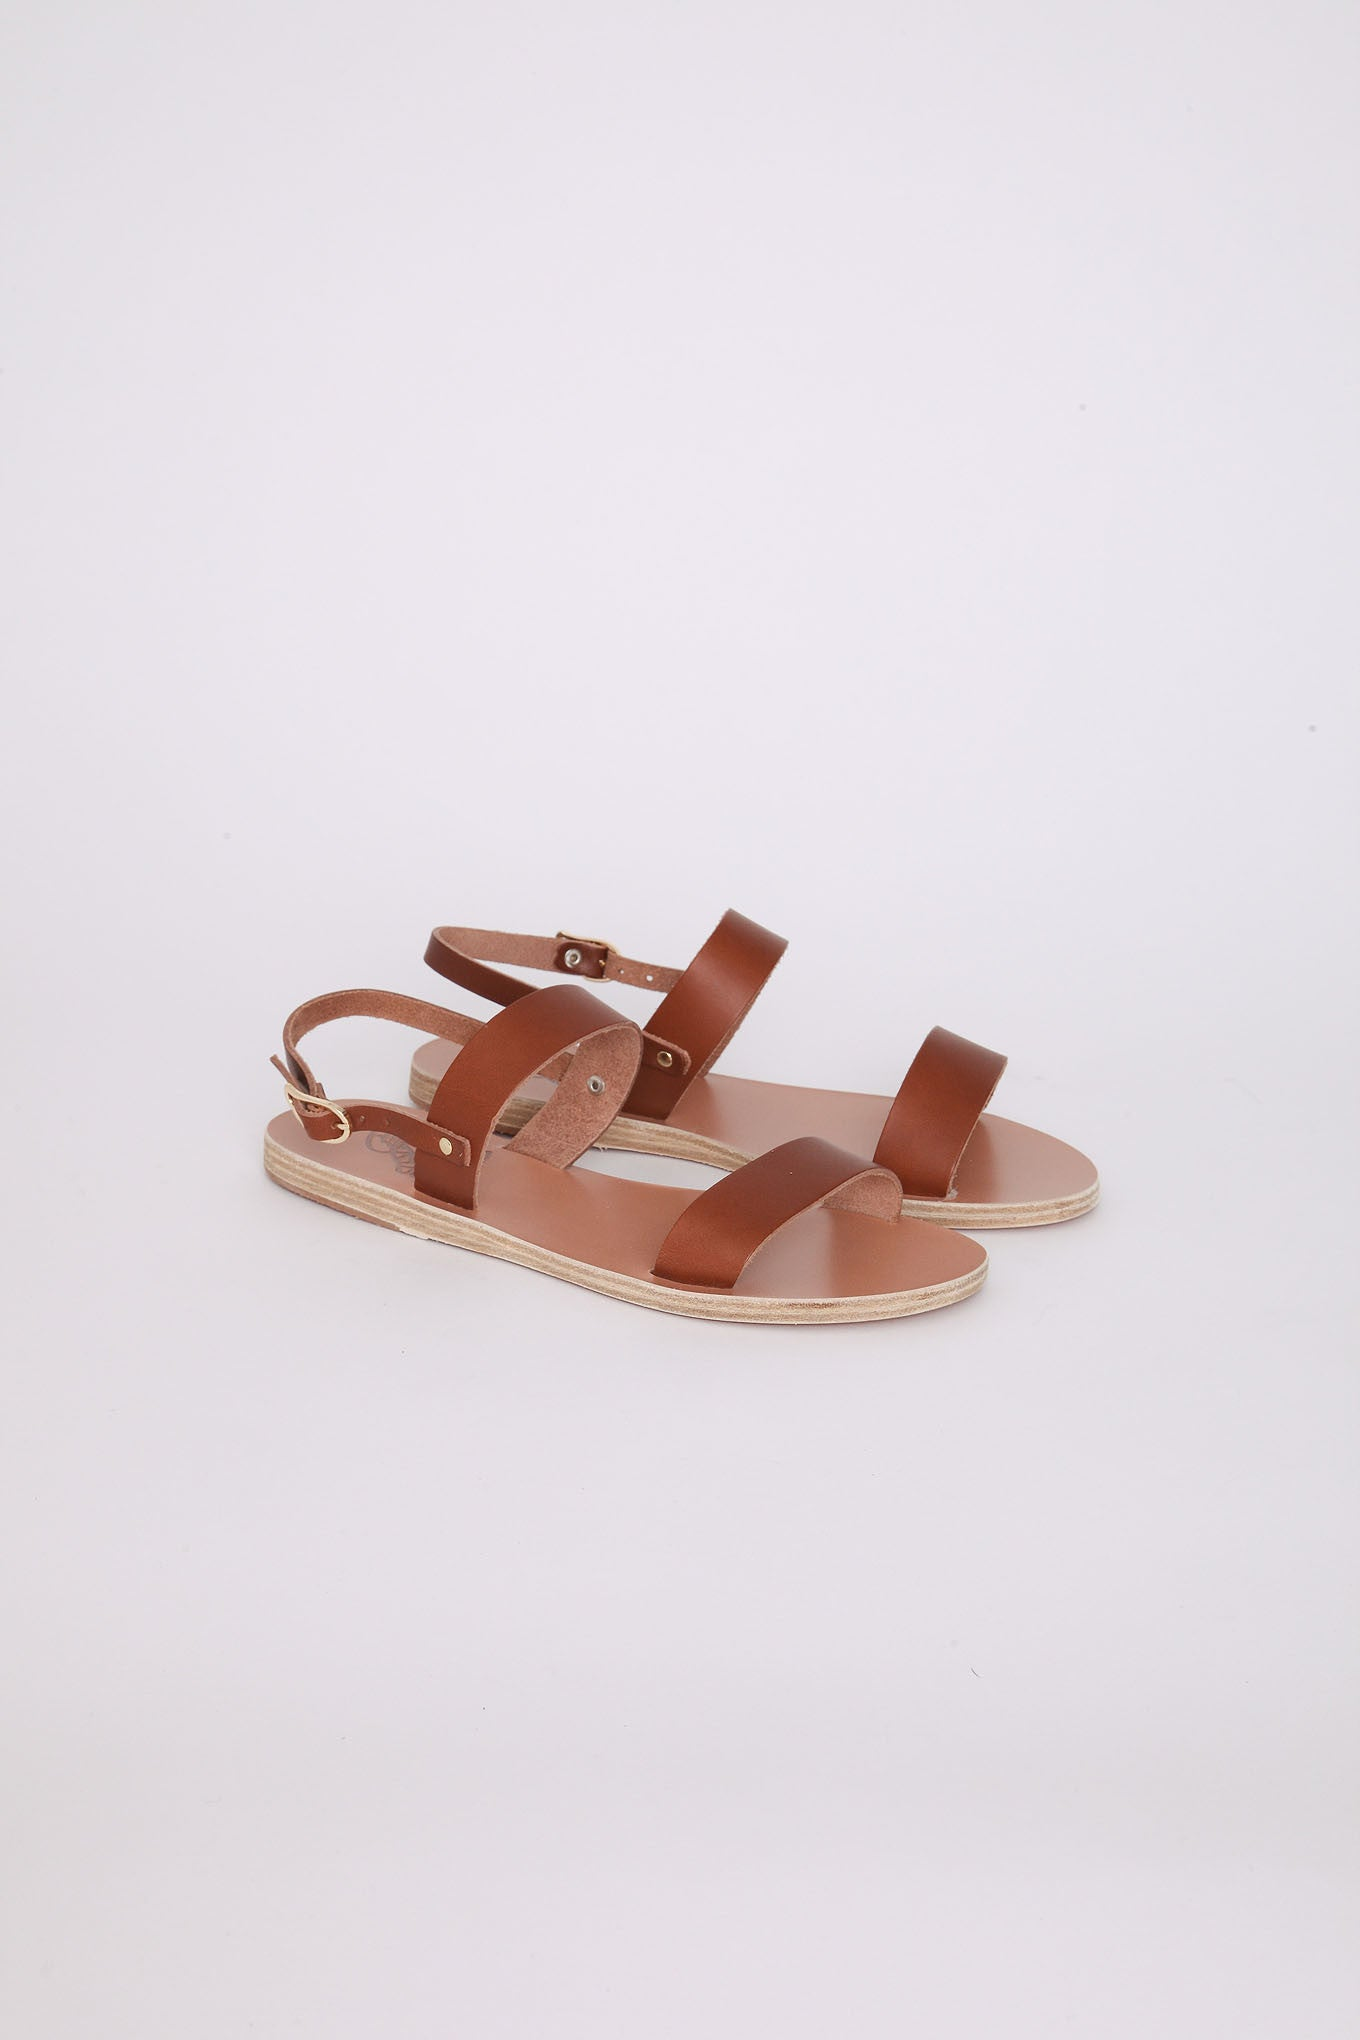 Ancient Greek Sandals / Clio Sandal